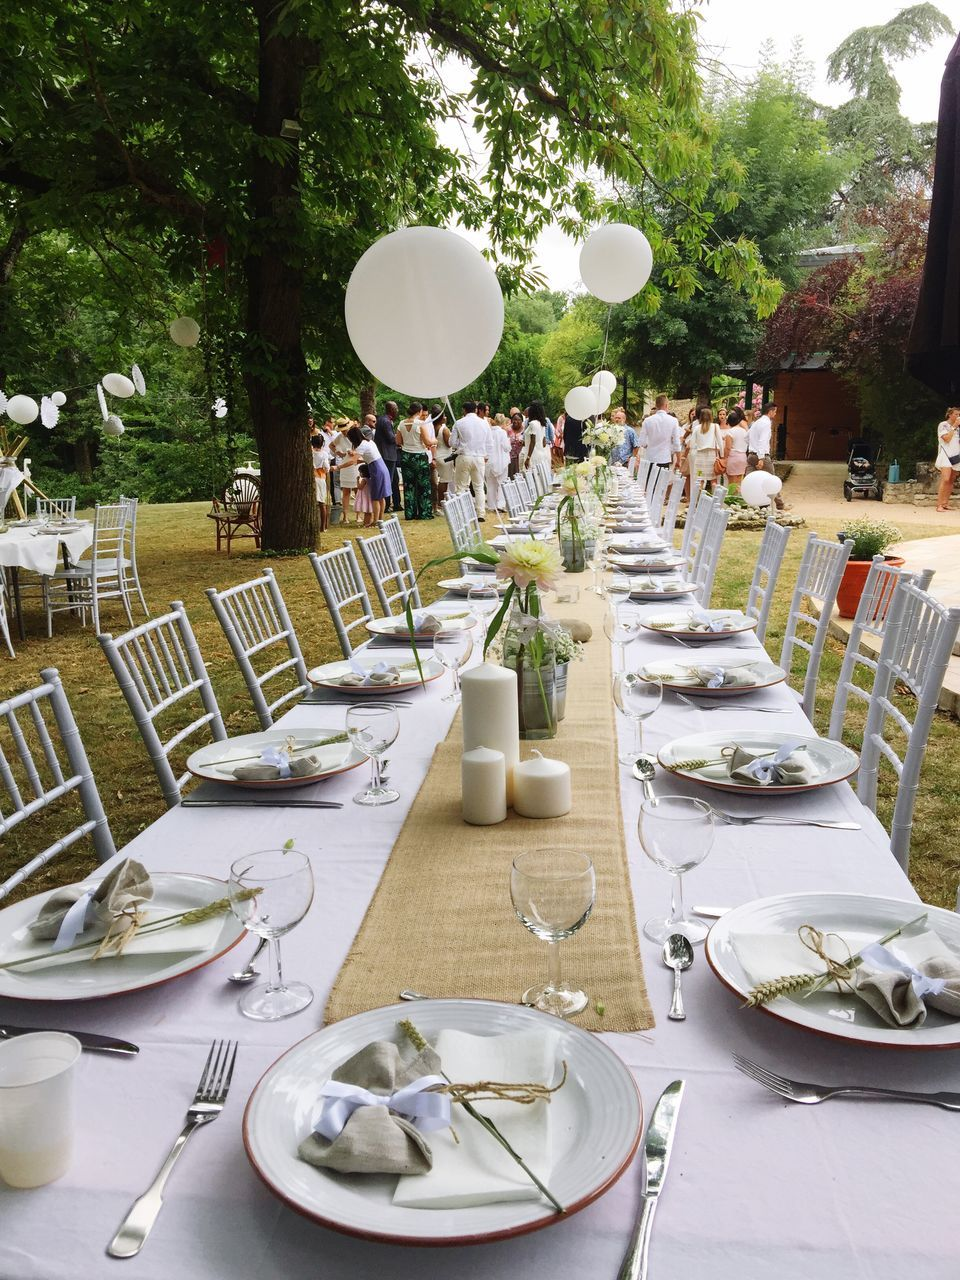 table, place setting, plate, chair, outdoor cafe, dining table, outdoors, tree, fork, napkin, celebration, day, no people